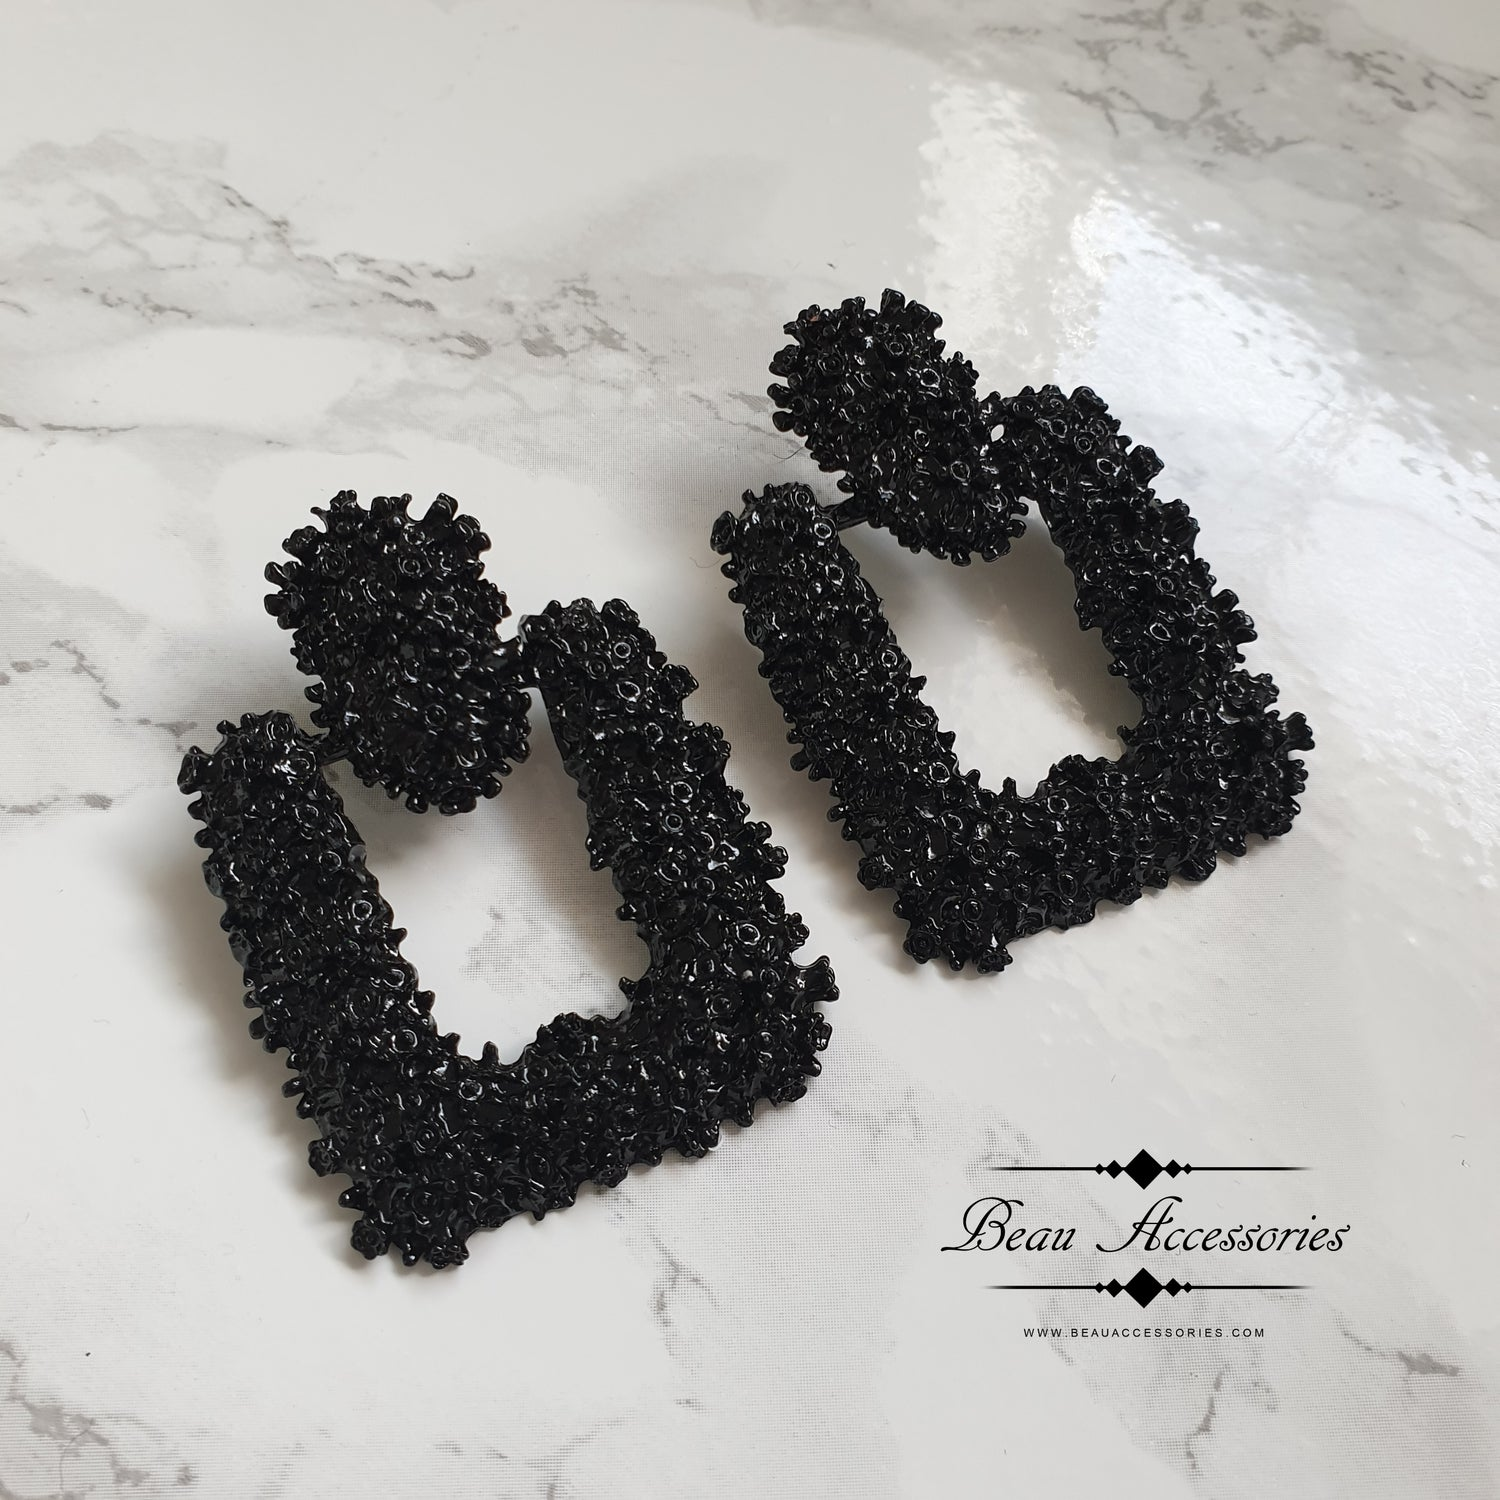 Image of Black Square Textured Statement Earrings